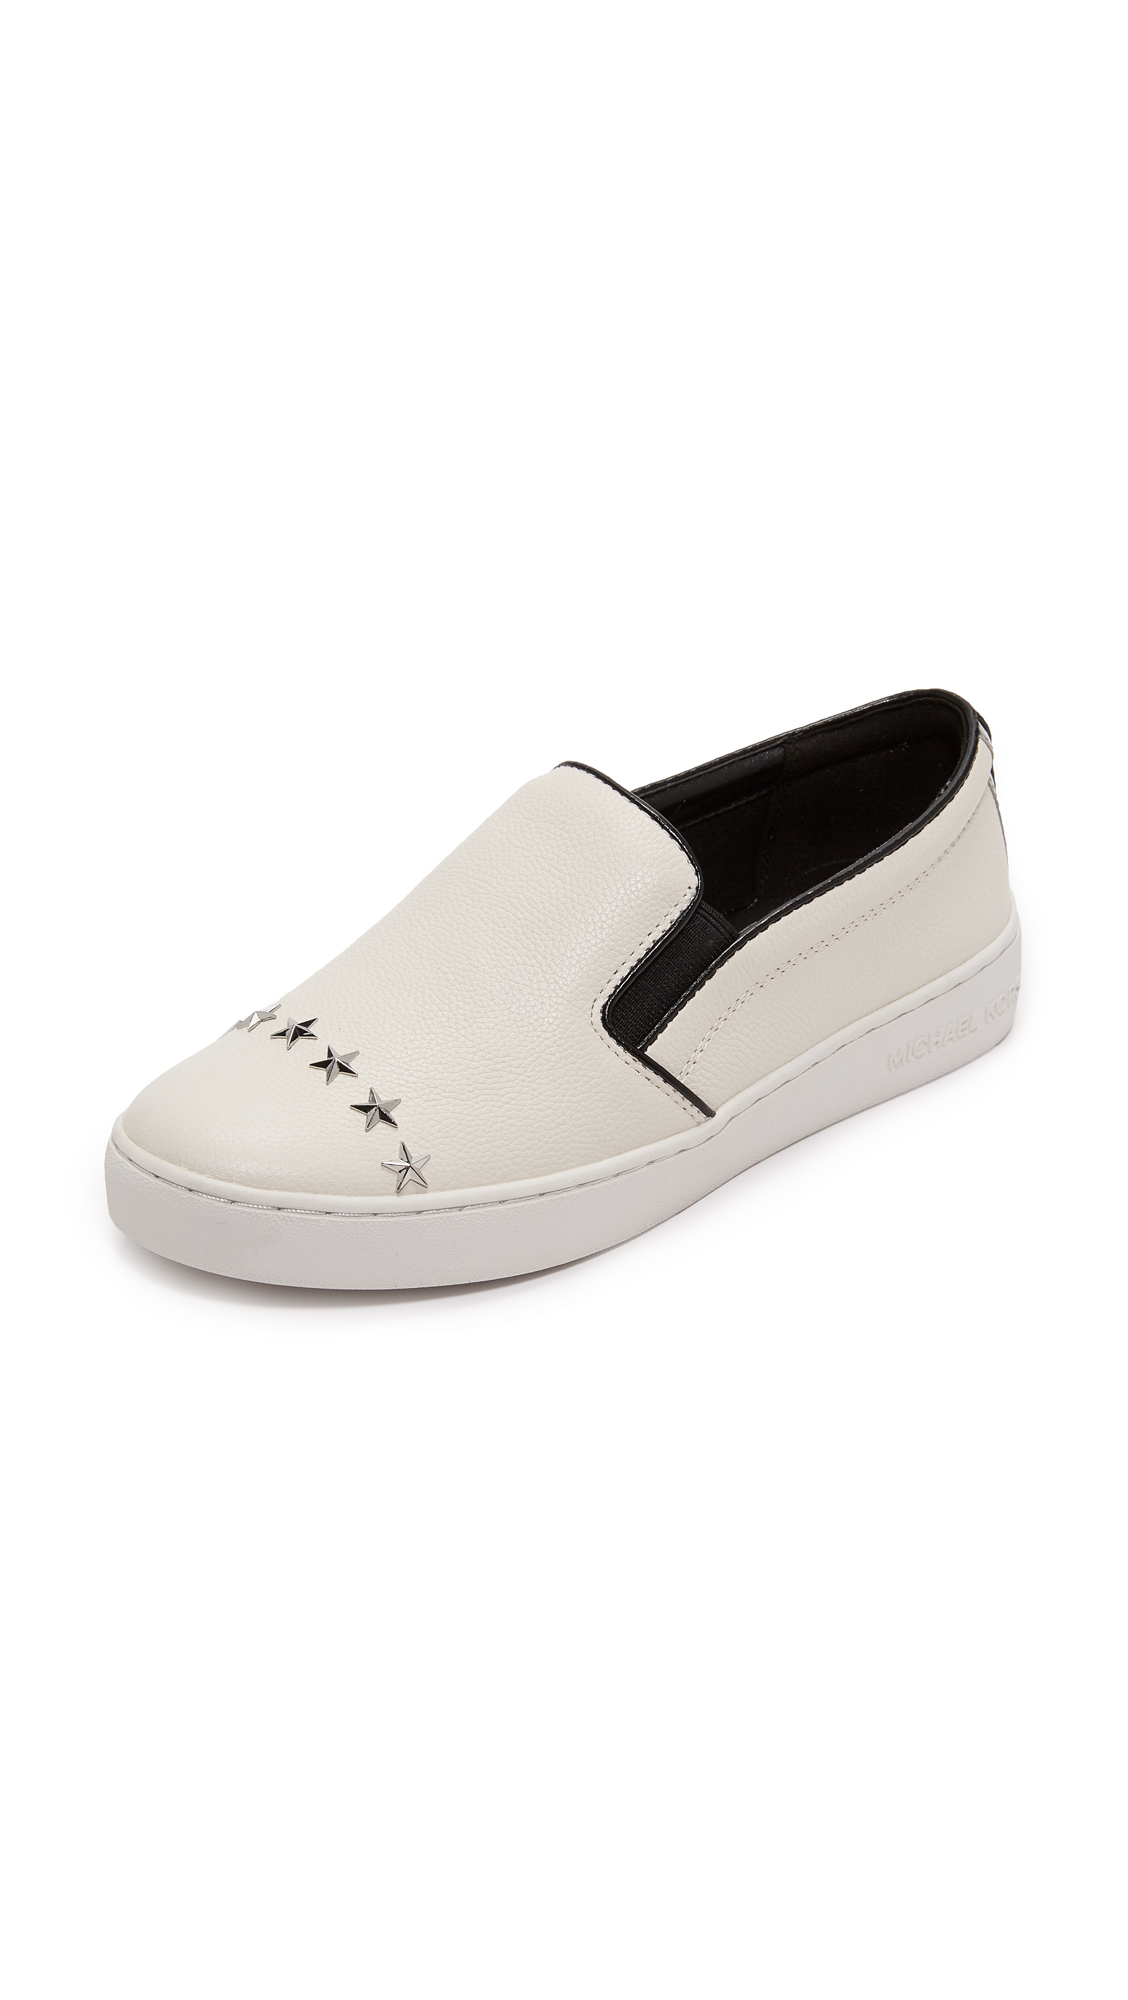 MICHAEL Michael Kors Keaton Star Studded Platform Slip On Sneakers - Optic White/Silver